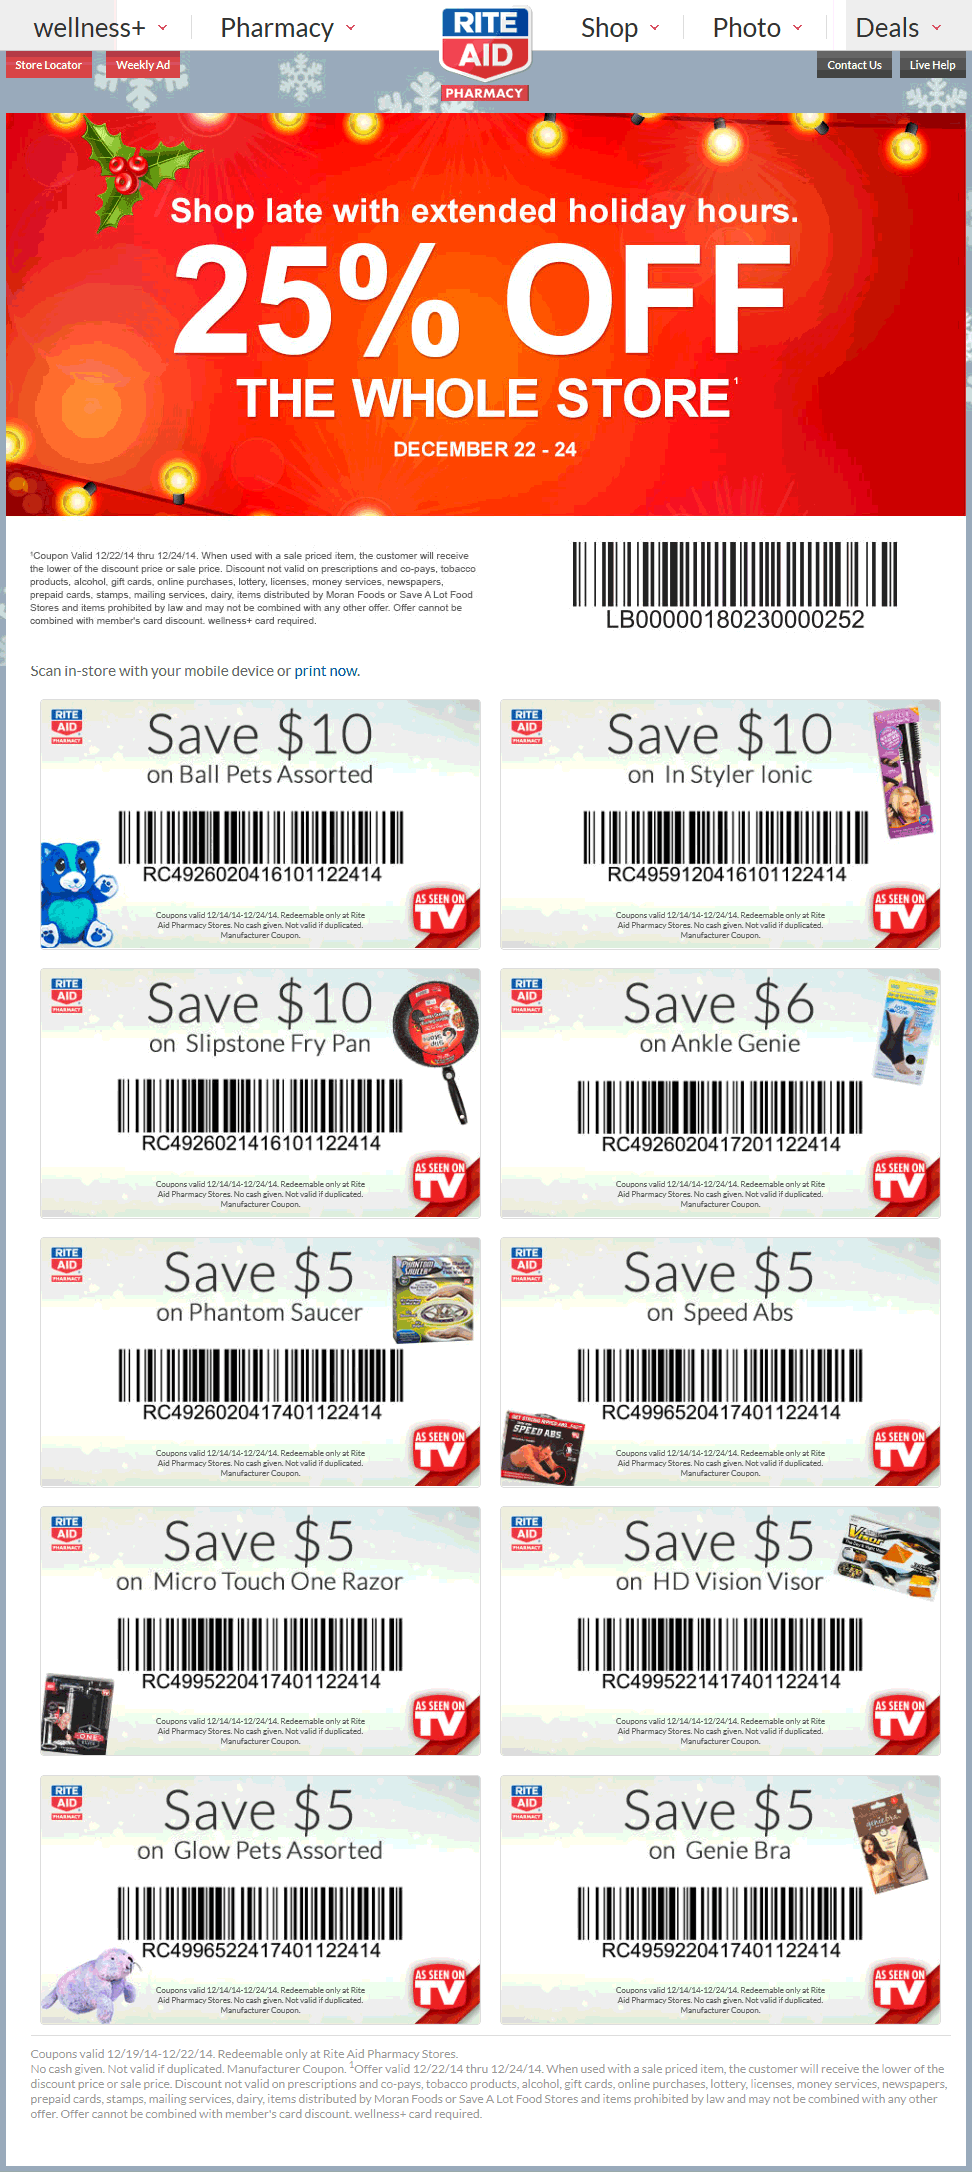 Rite Aid Coupon November 2017 25% off everything today at Rite Aid pharmacy